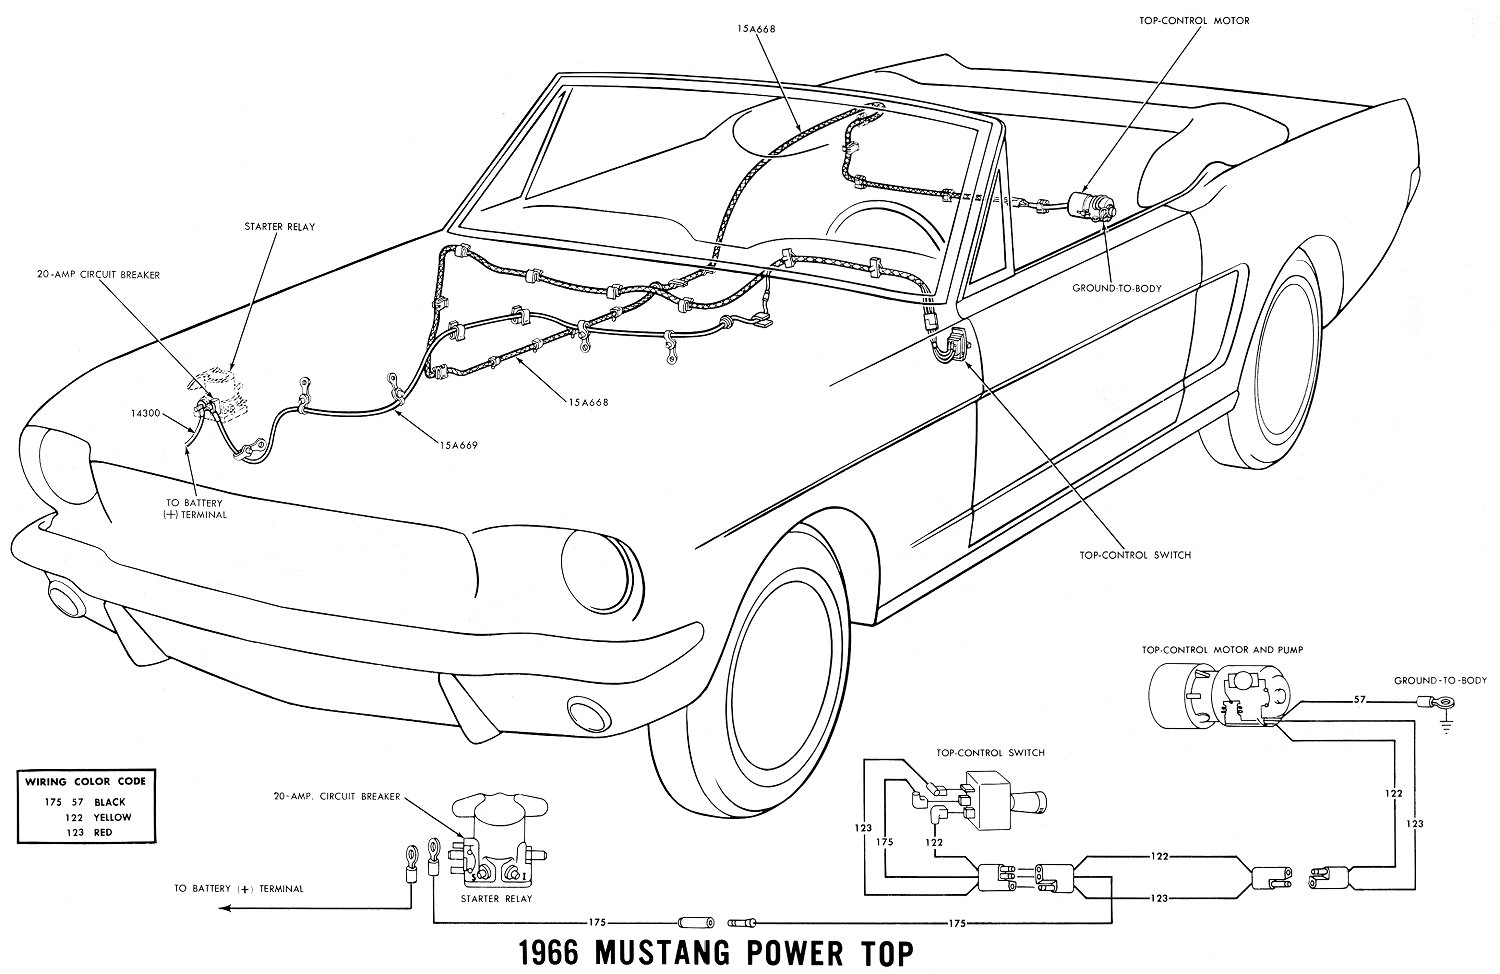 1966 mustang wiring diagrams average joe restoration 1965 Mustang Color Wiring  Diagram 1966 Mustang Dash Wiring Diagram